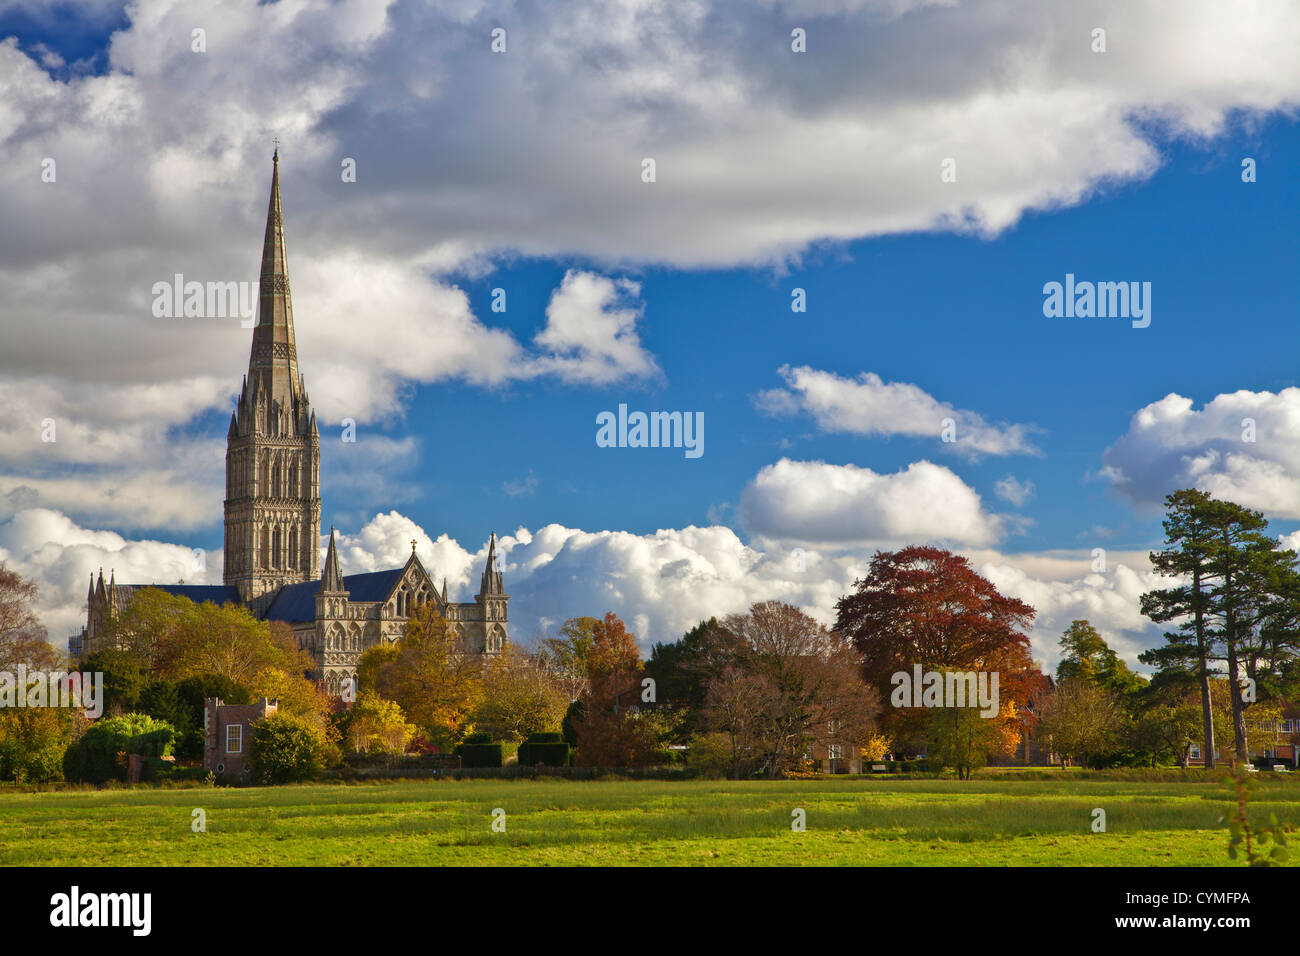 Autumn view of the spire of medieval Salisbury Cathedral, Wiltshire